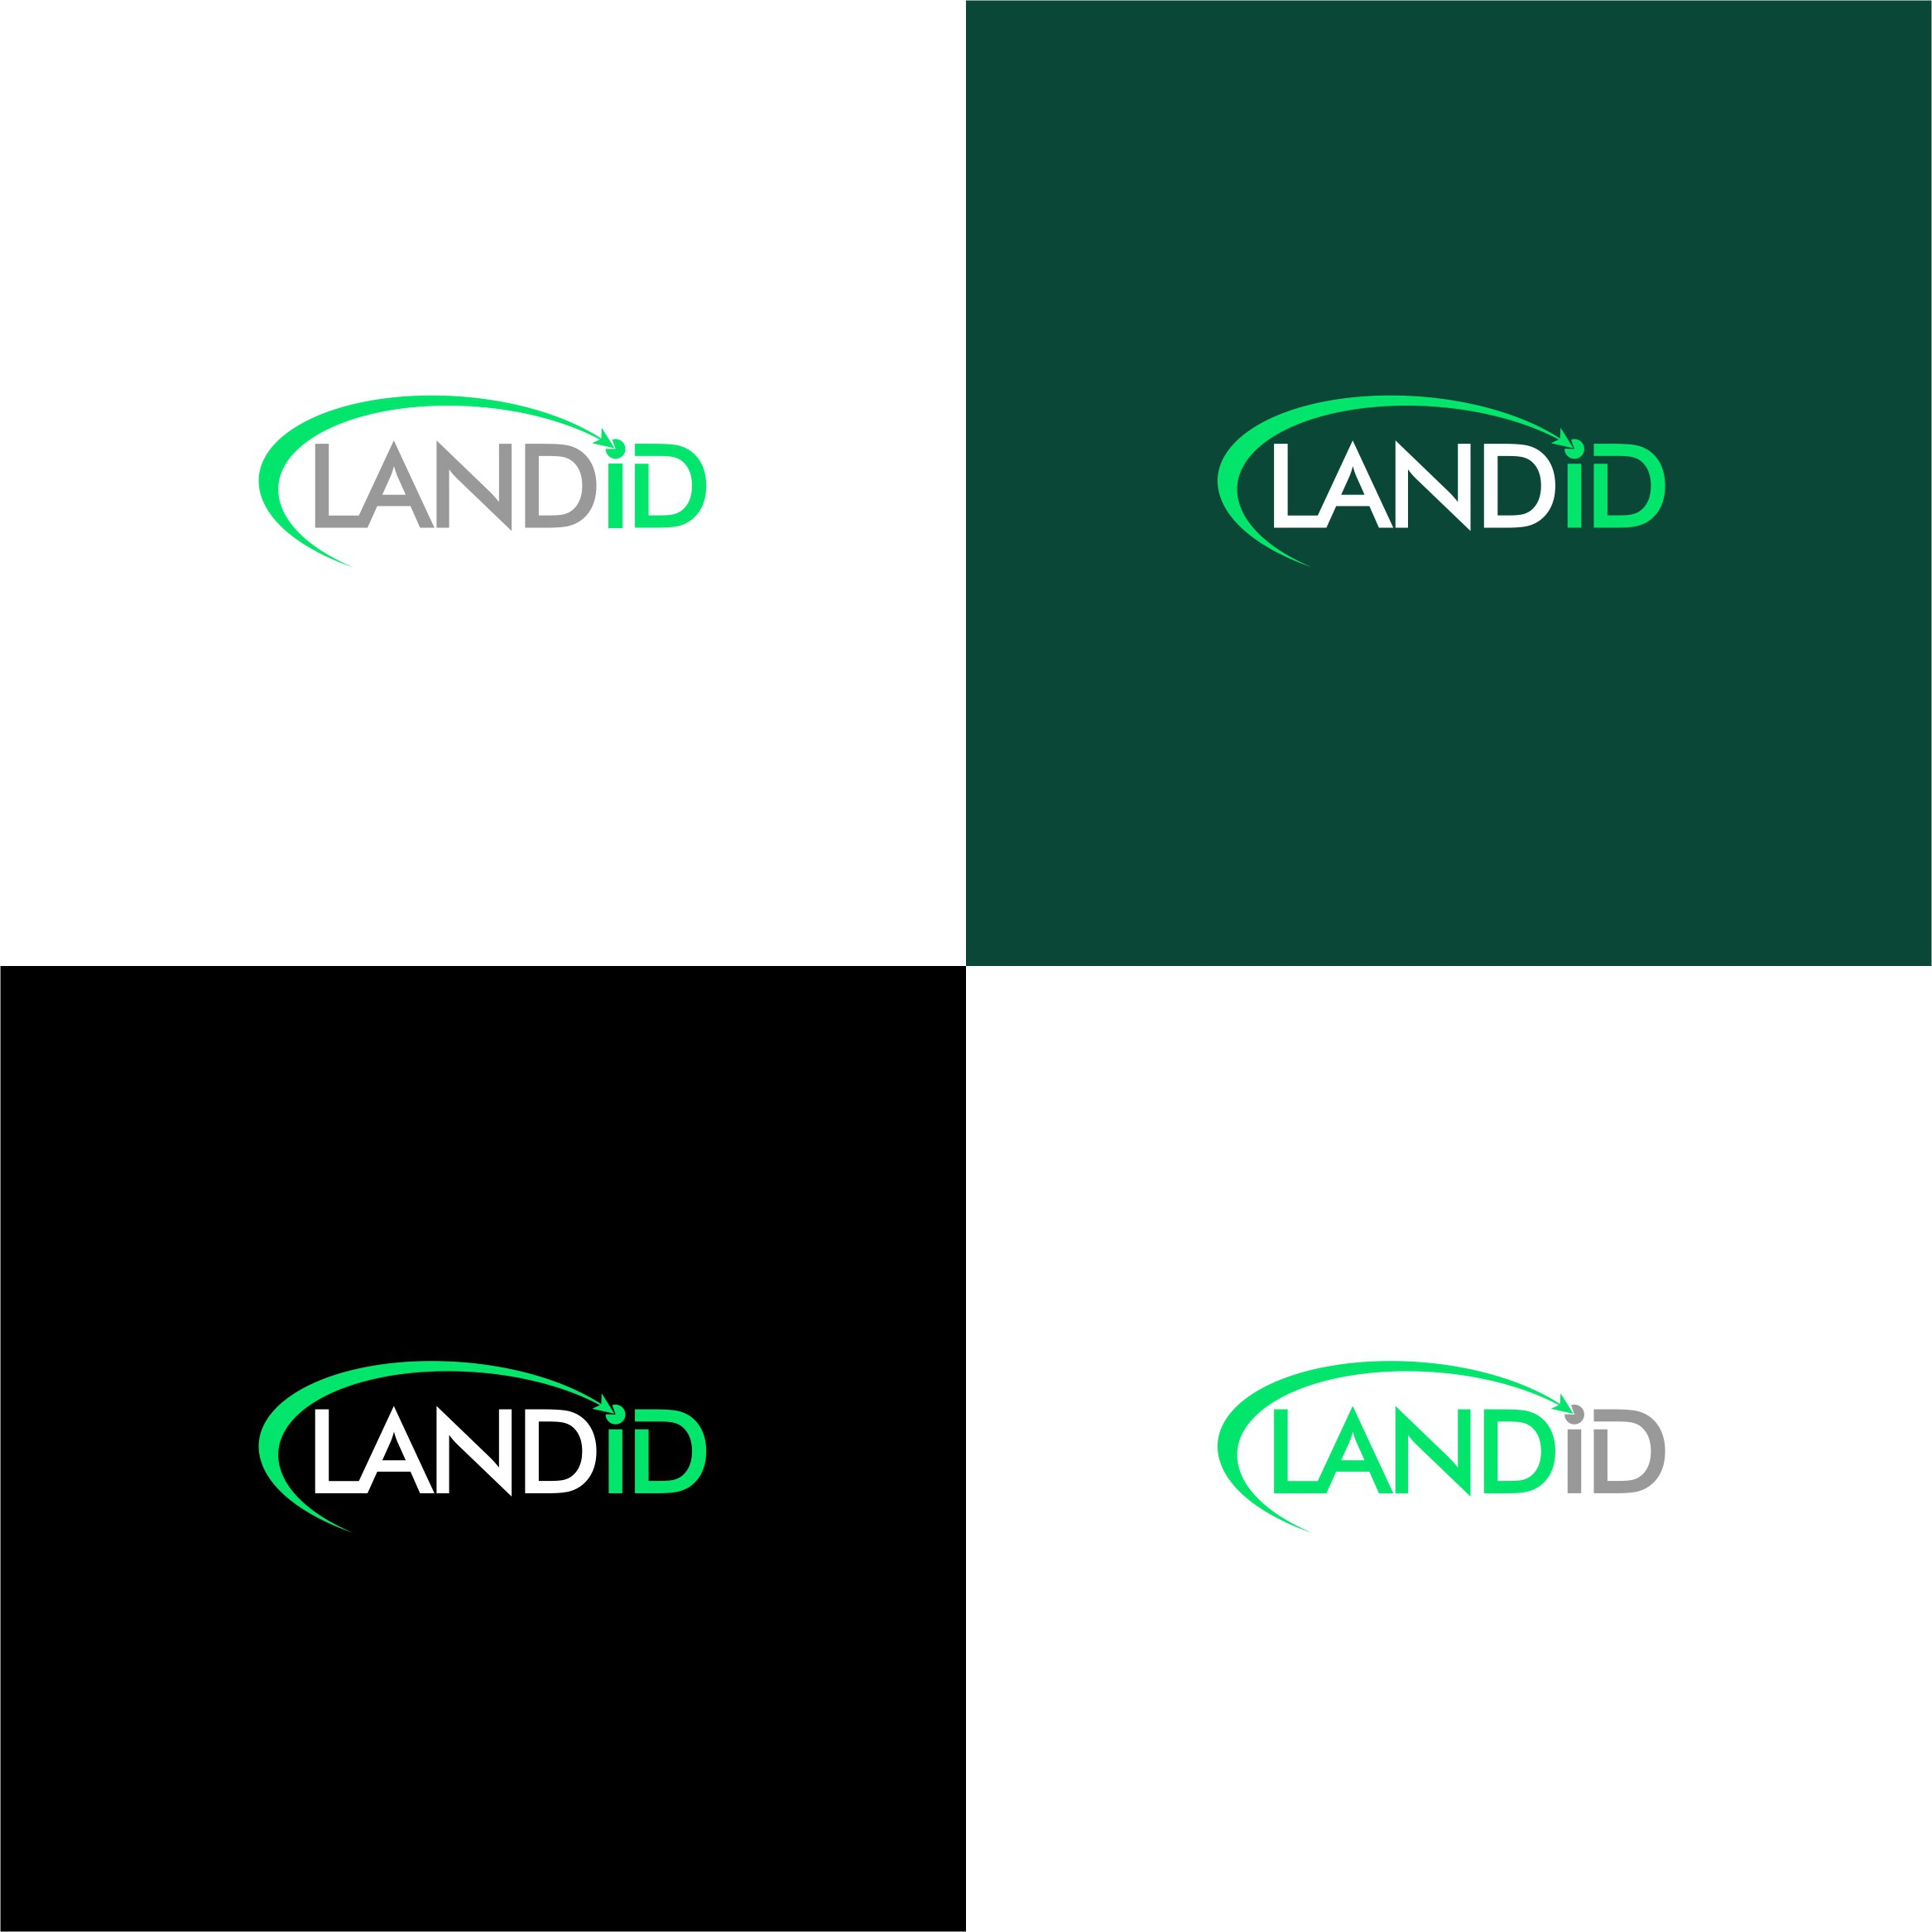 Looking for a clean and fresh logo for a job placement company called LANDID